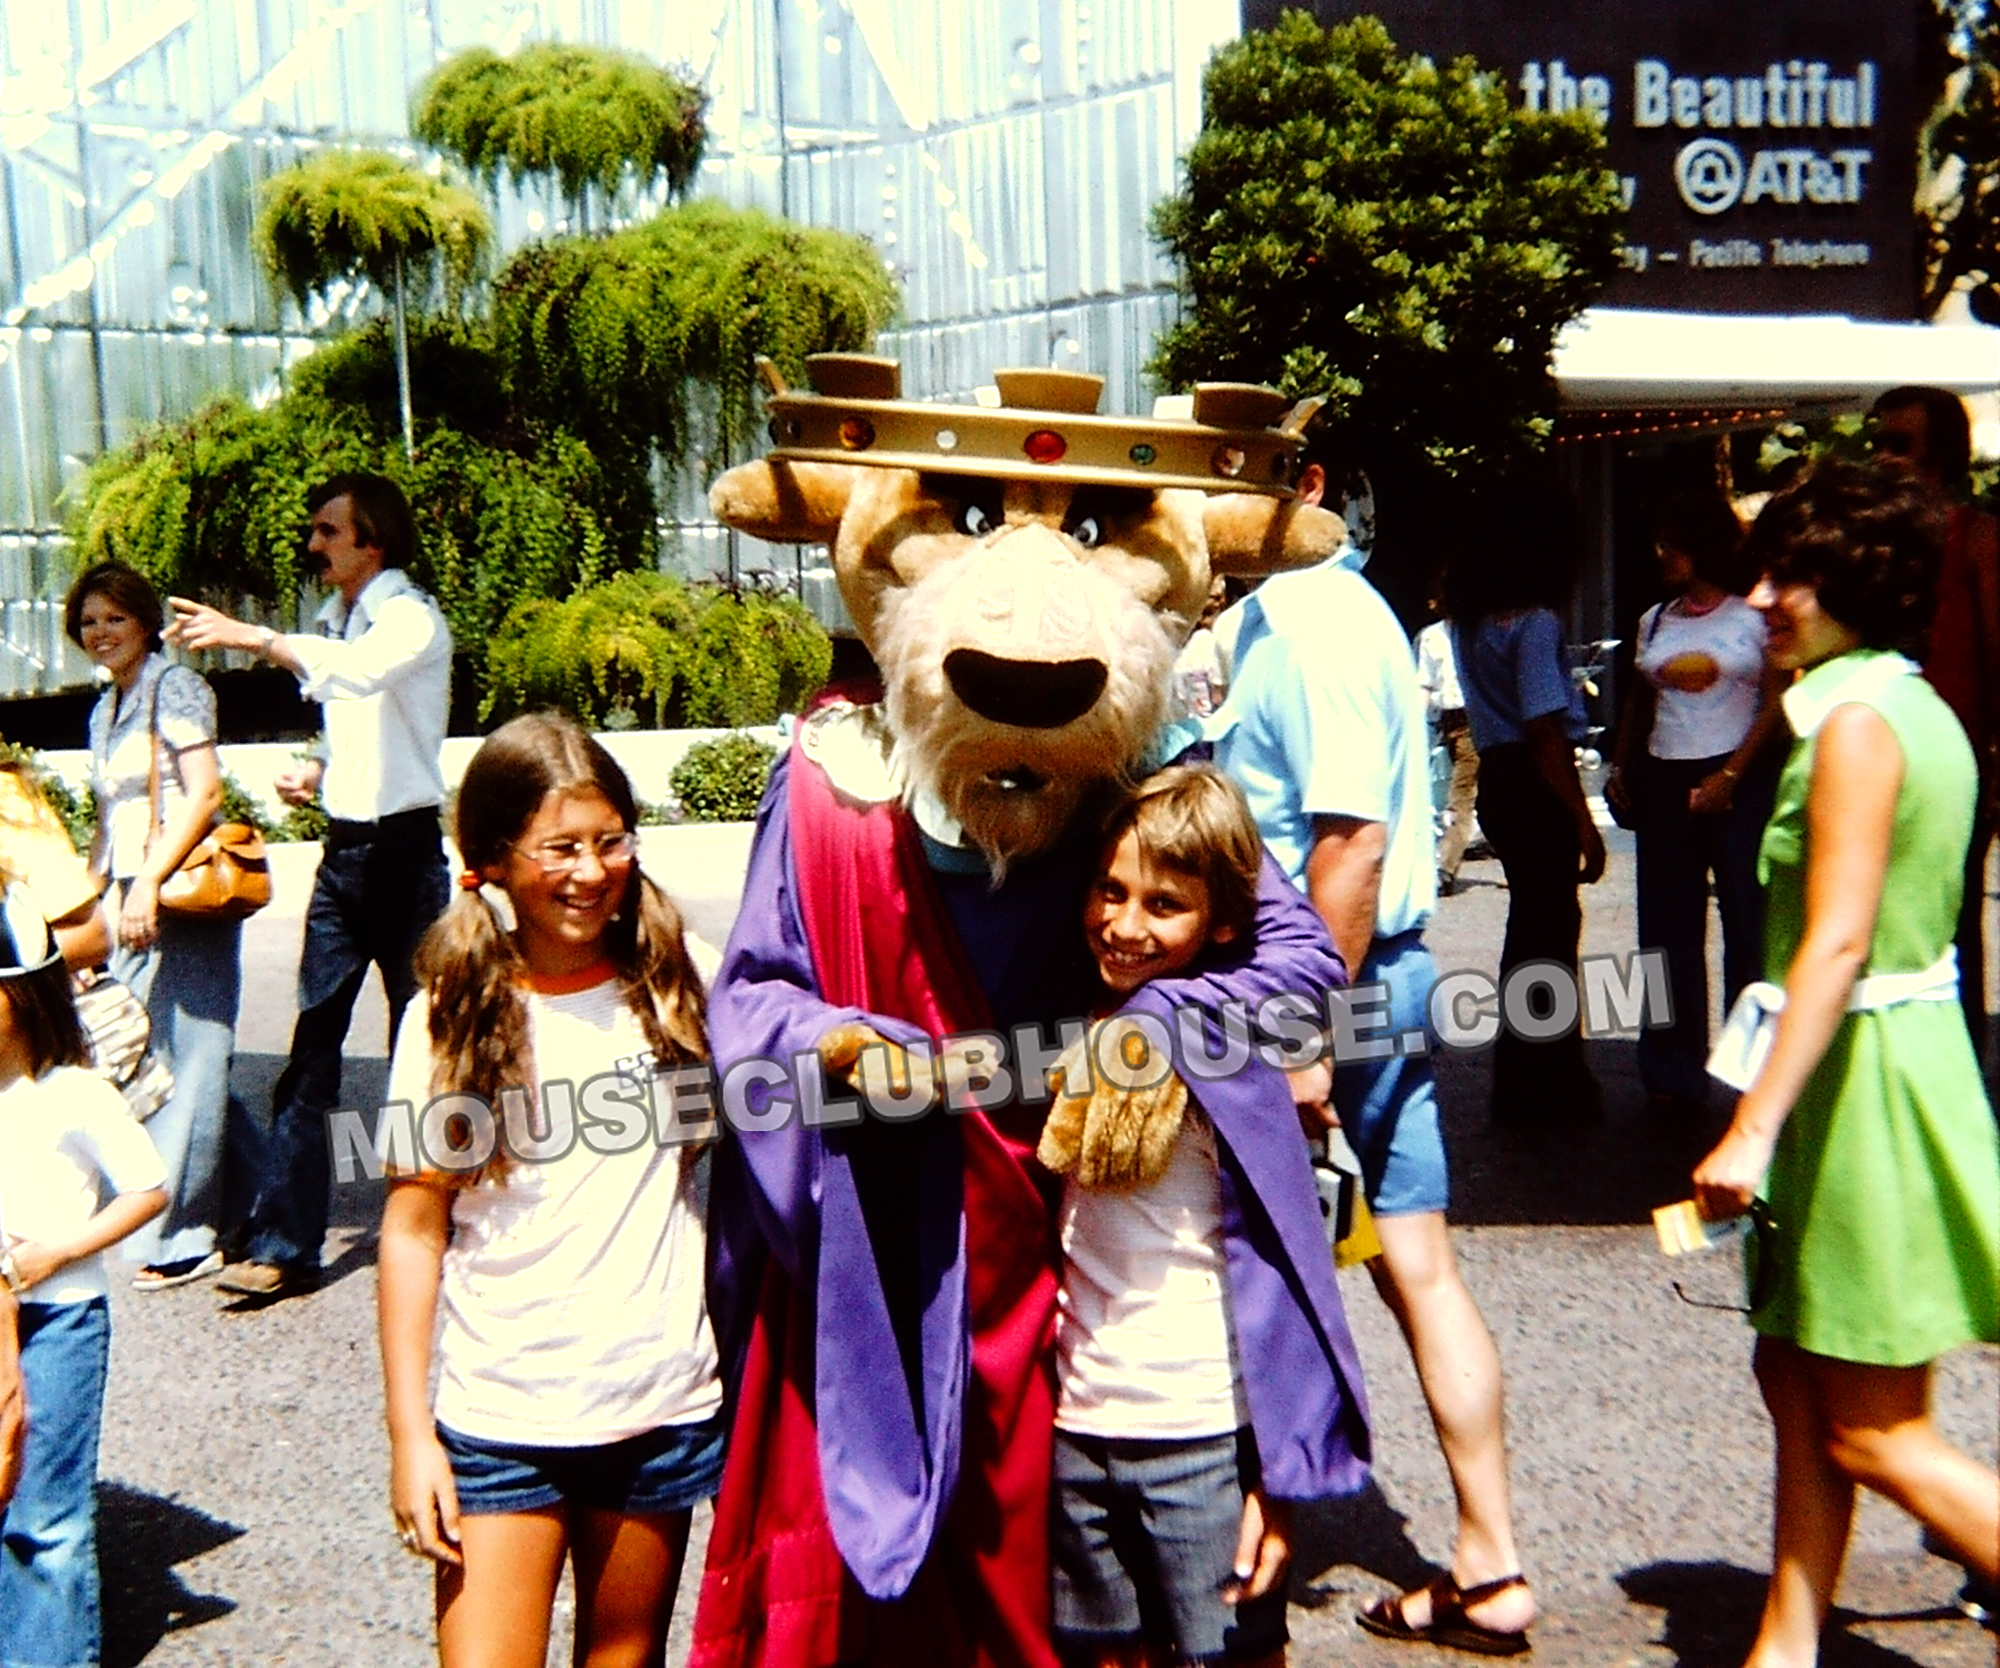 Tomorrowland in Disneyland 1975, Prince John in front of America the Beautiful